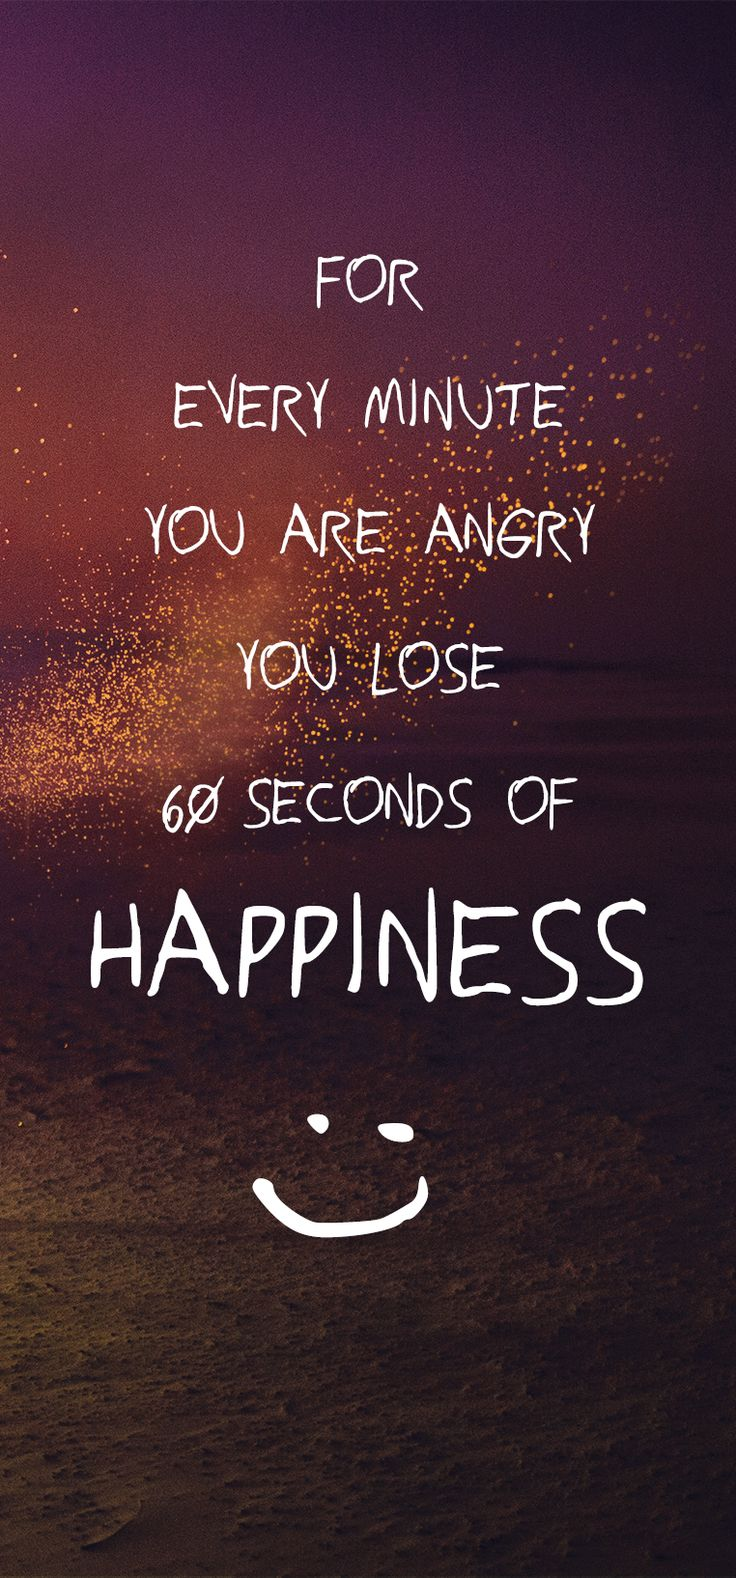 Uplifting Quotes For Life Enchanting Best 25 Control Anger Quotes Ideas On Pinterest  Anger Quotes